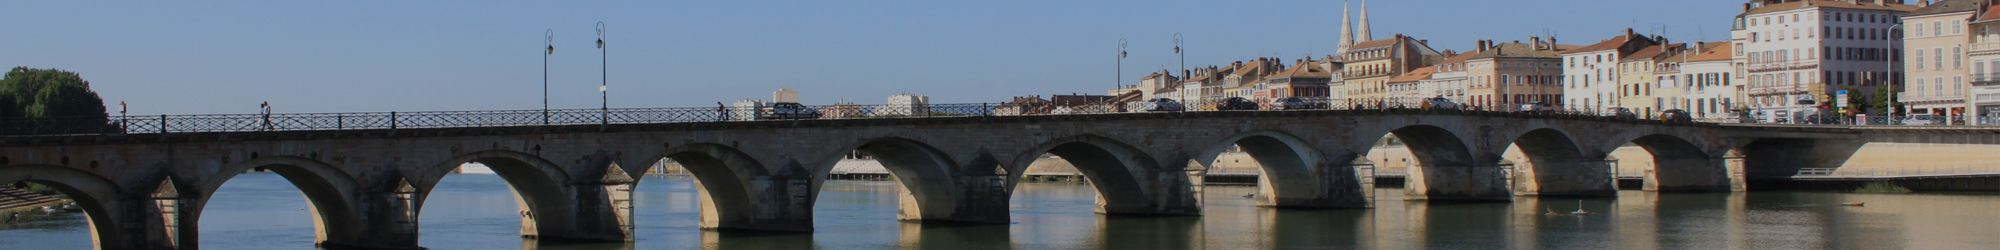 Pont Saint-Laurent à Mâcon